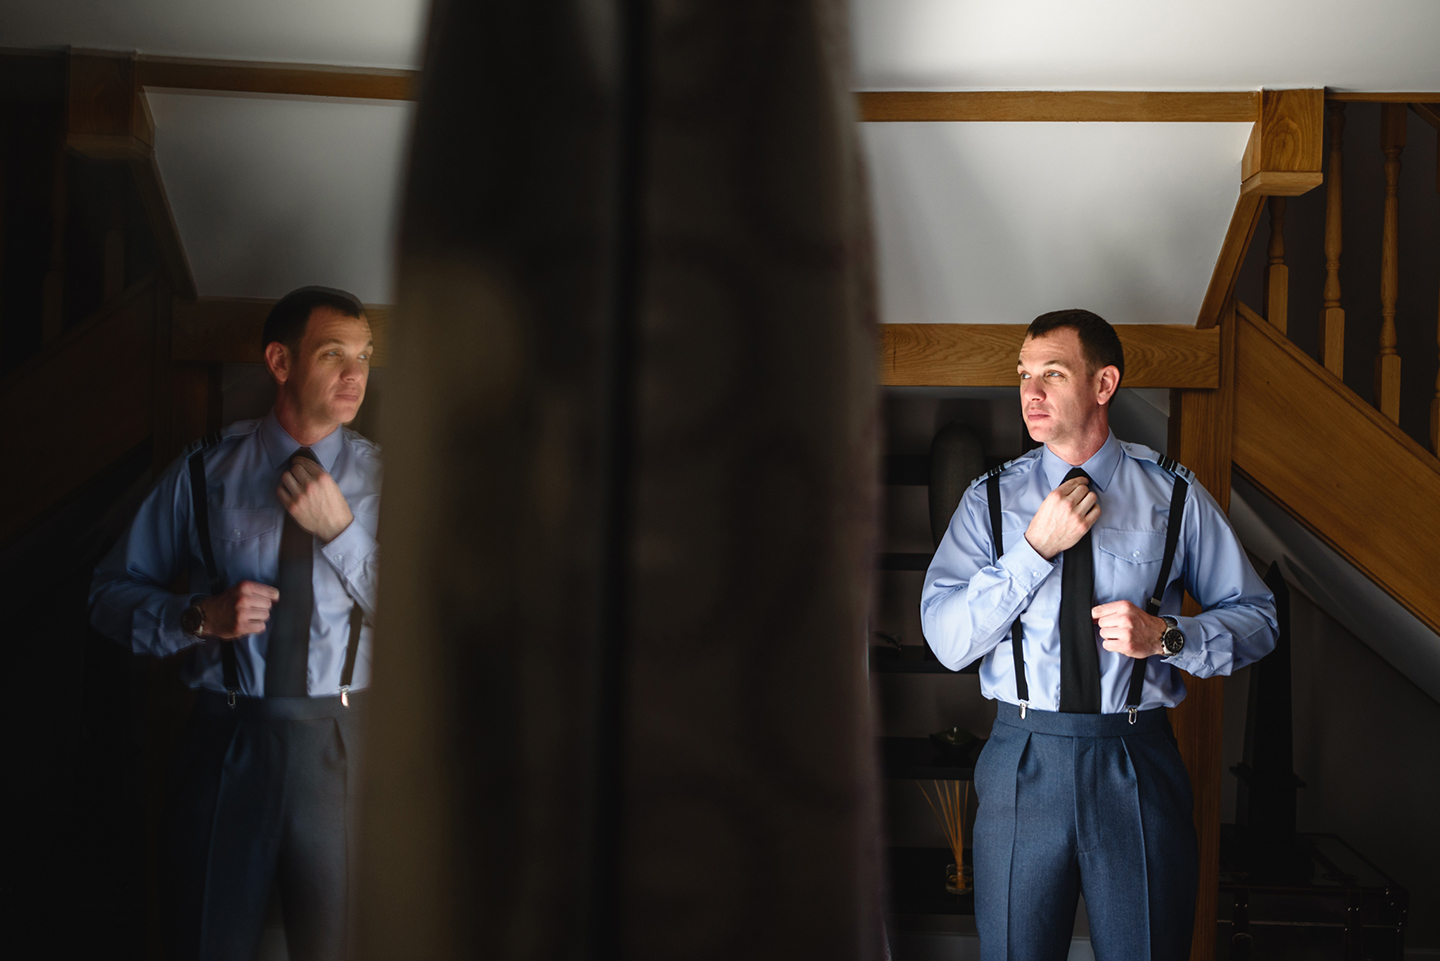 The groom gets ready for the big day ahead wearing his navy blue military suit